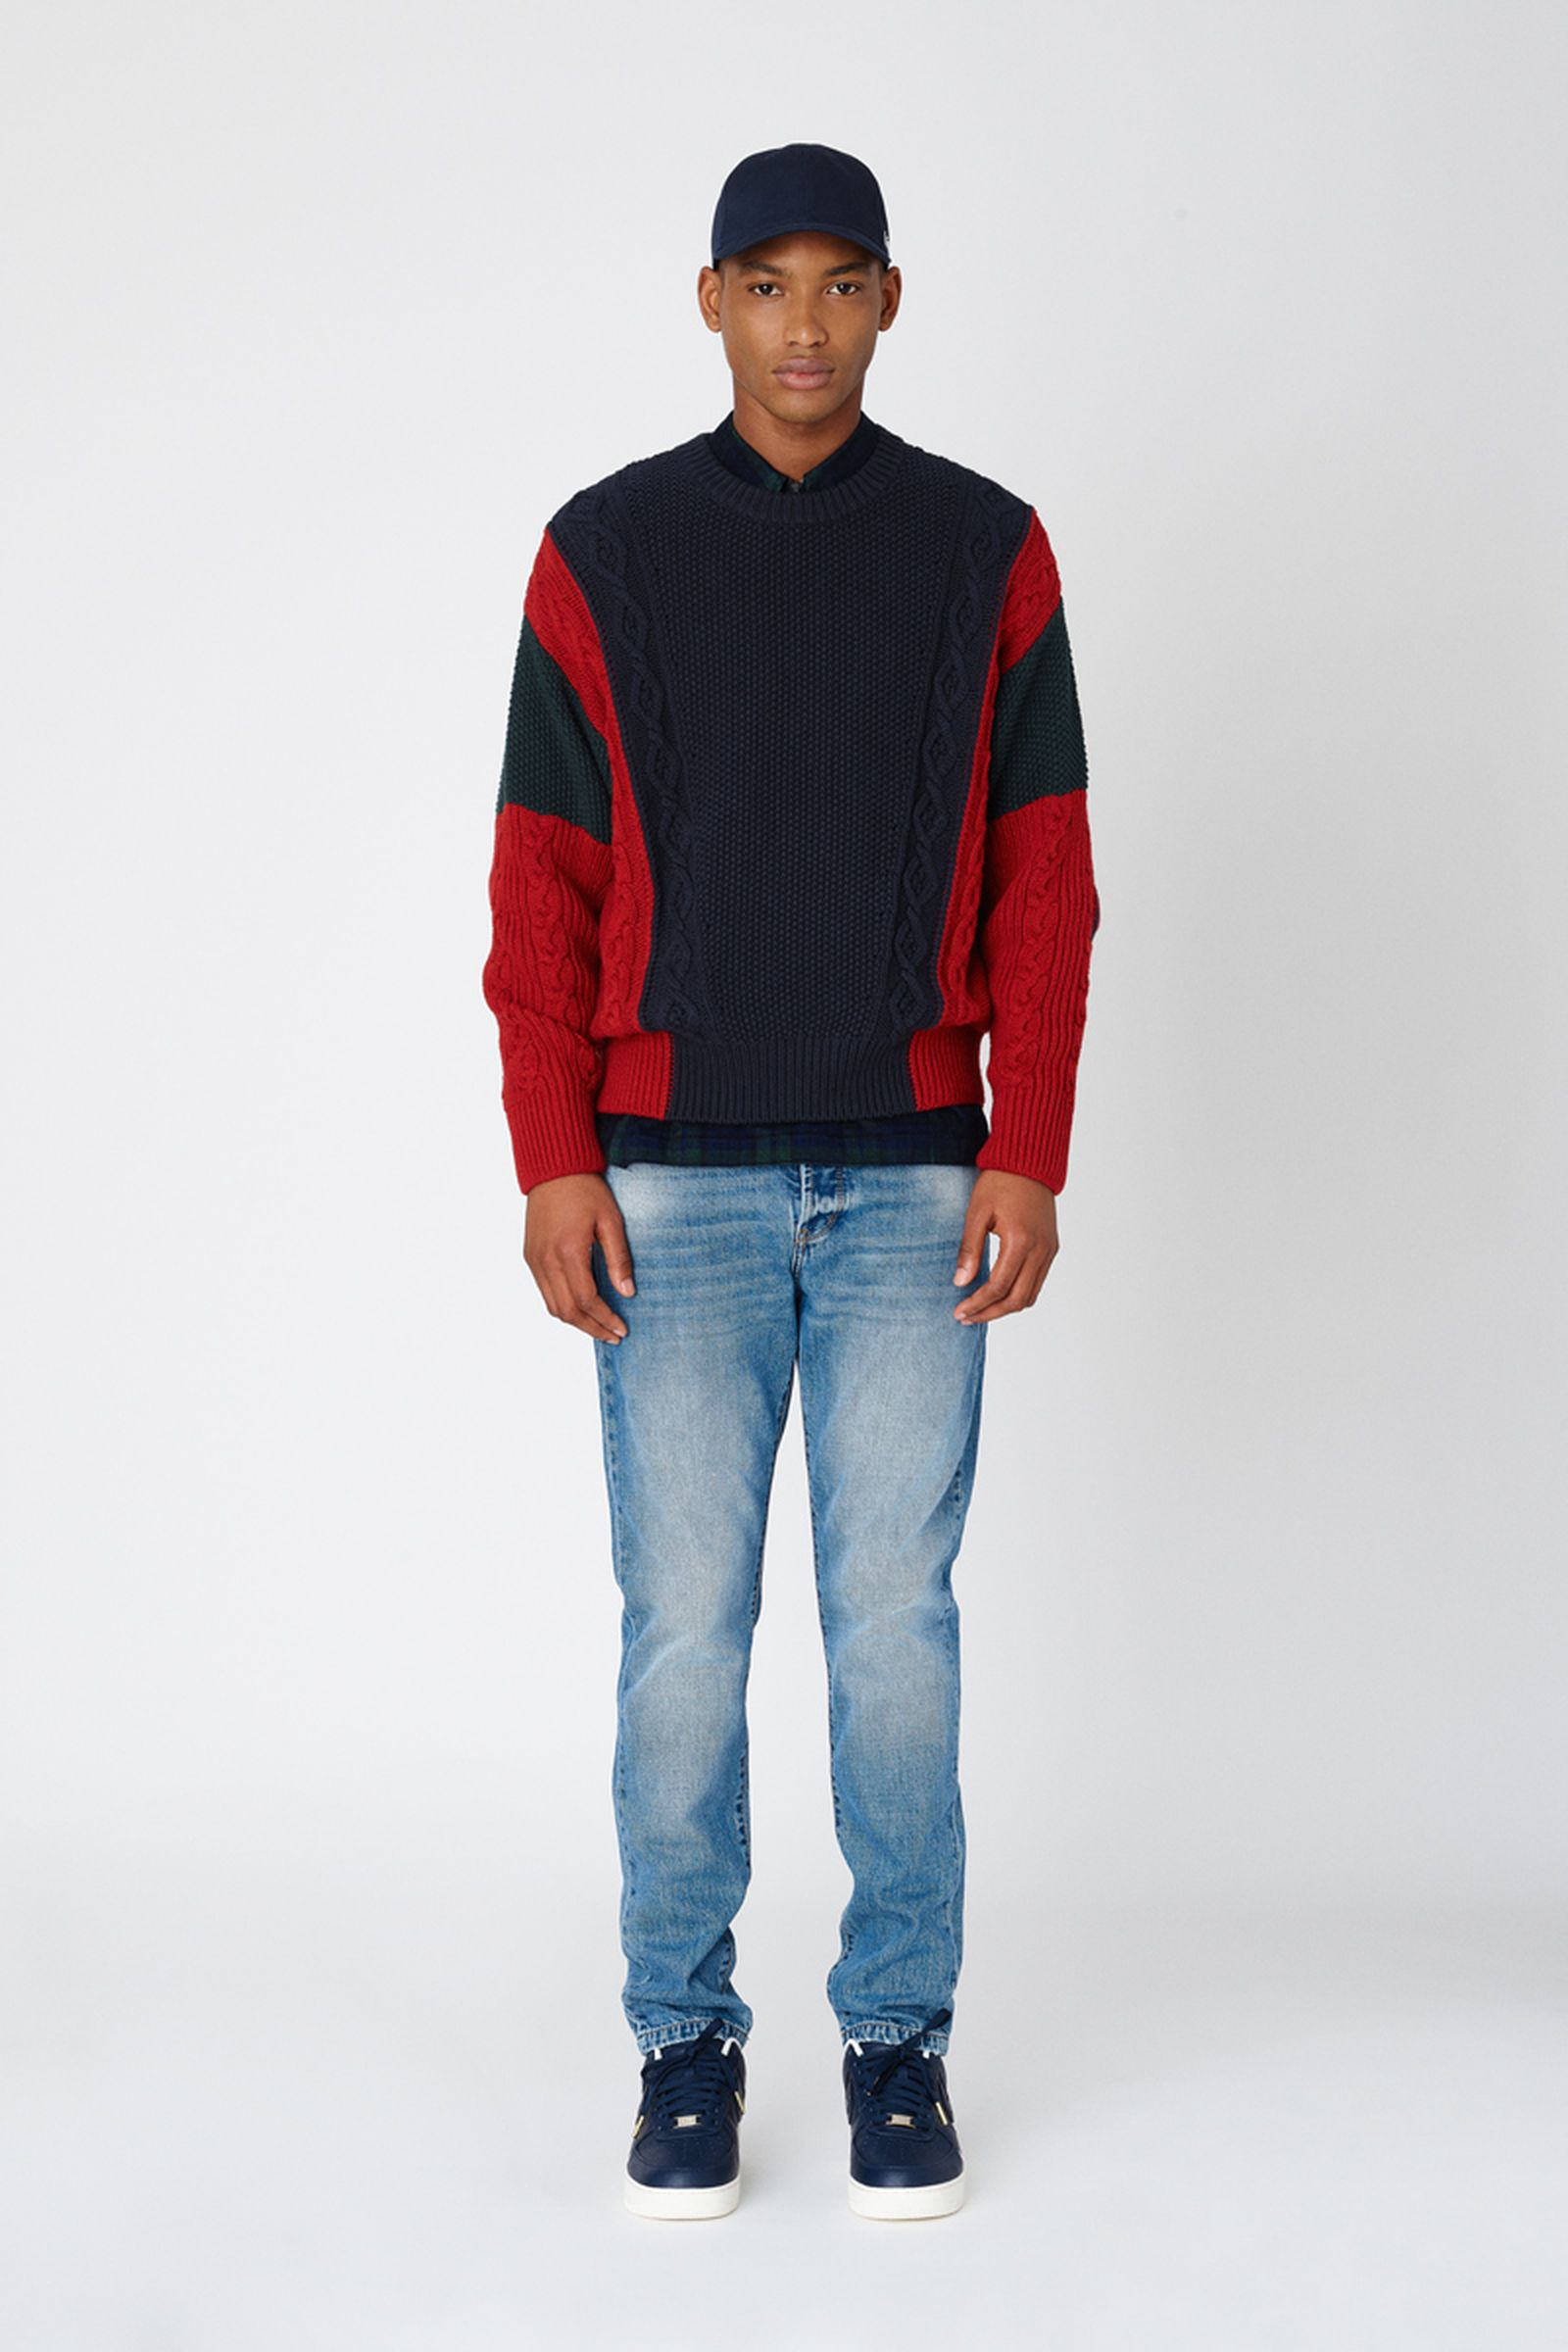 Kith Fall 2 Collection